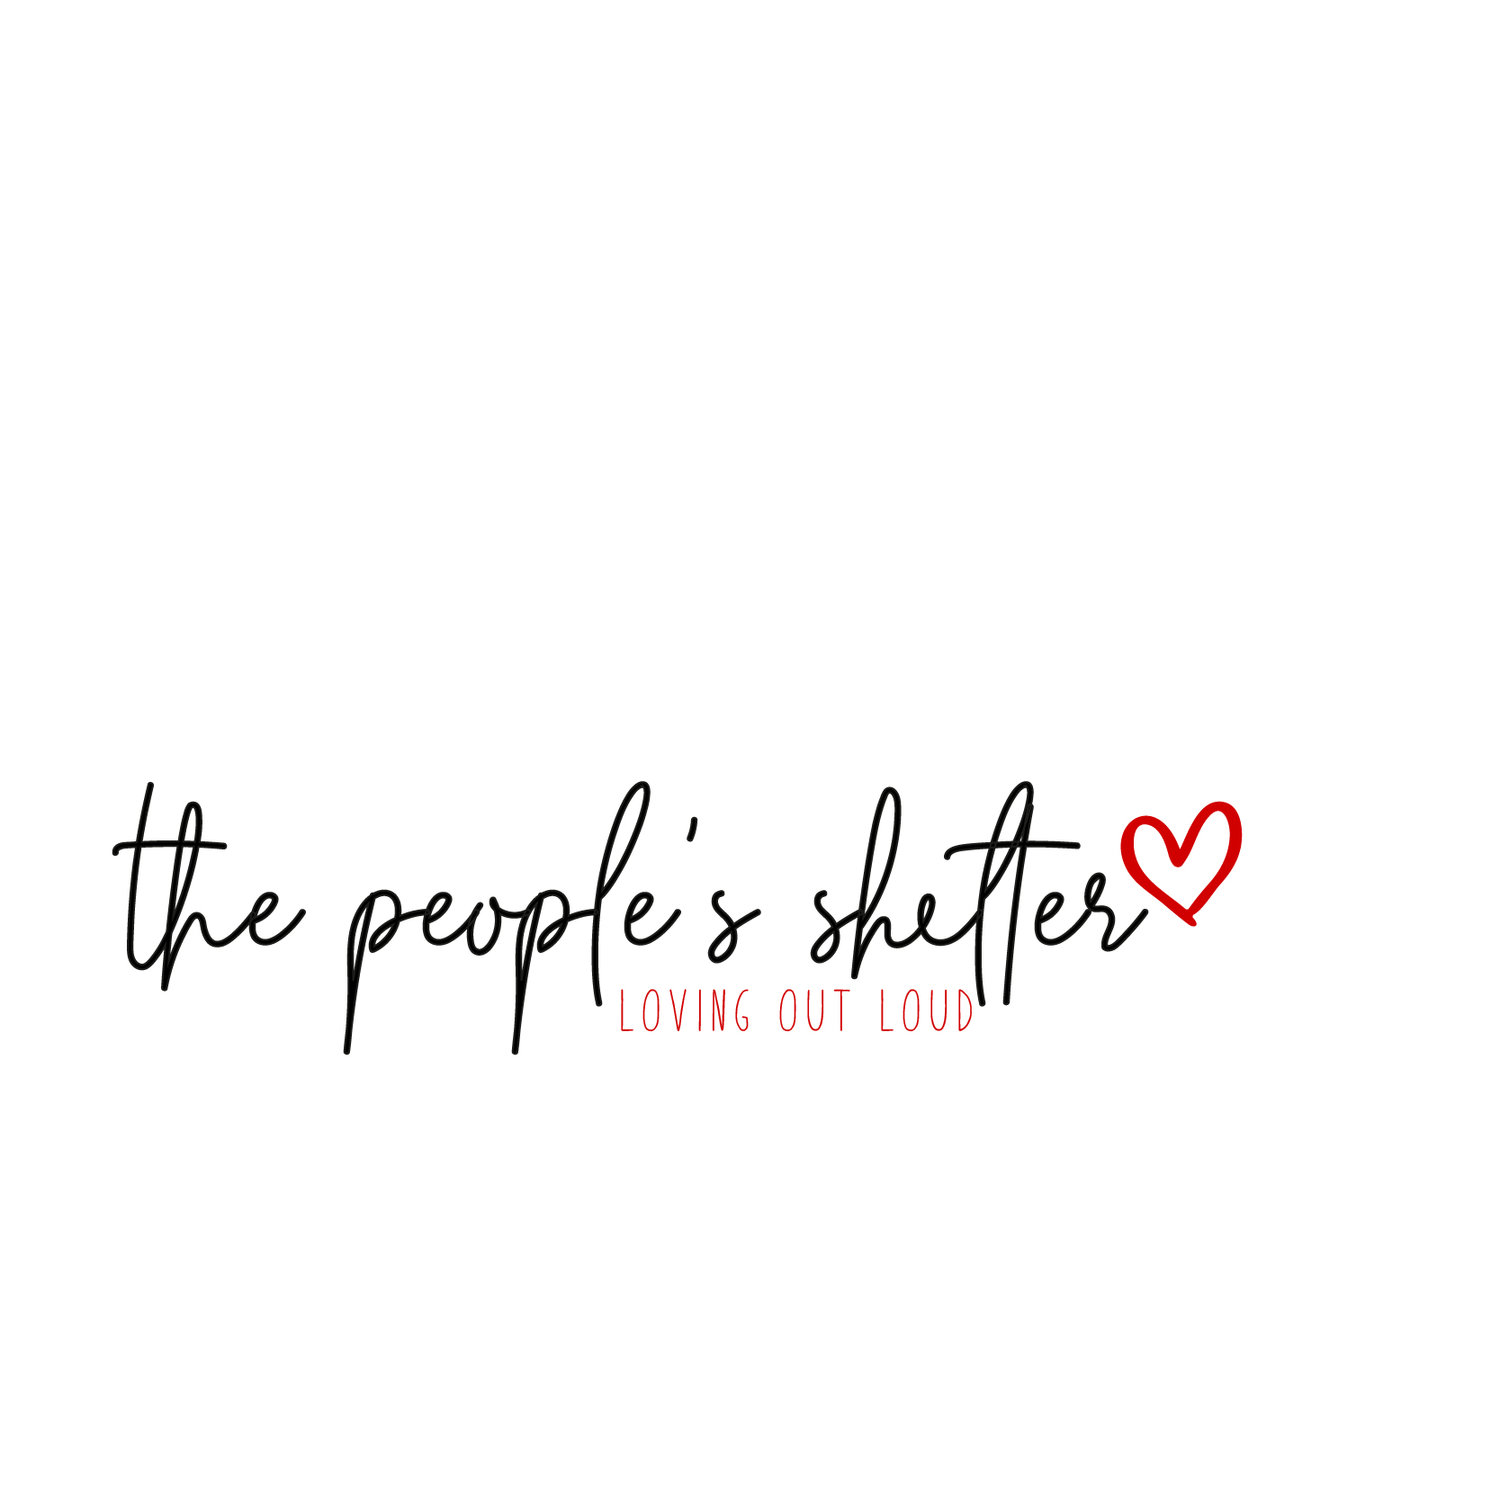 The People's Shelter